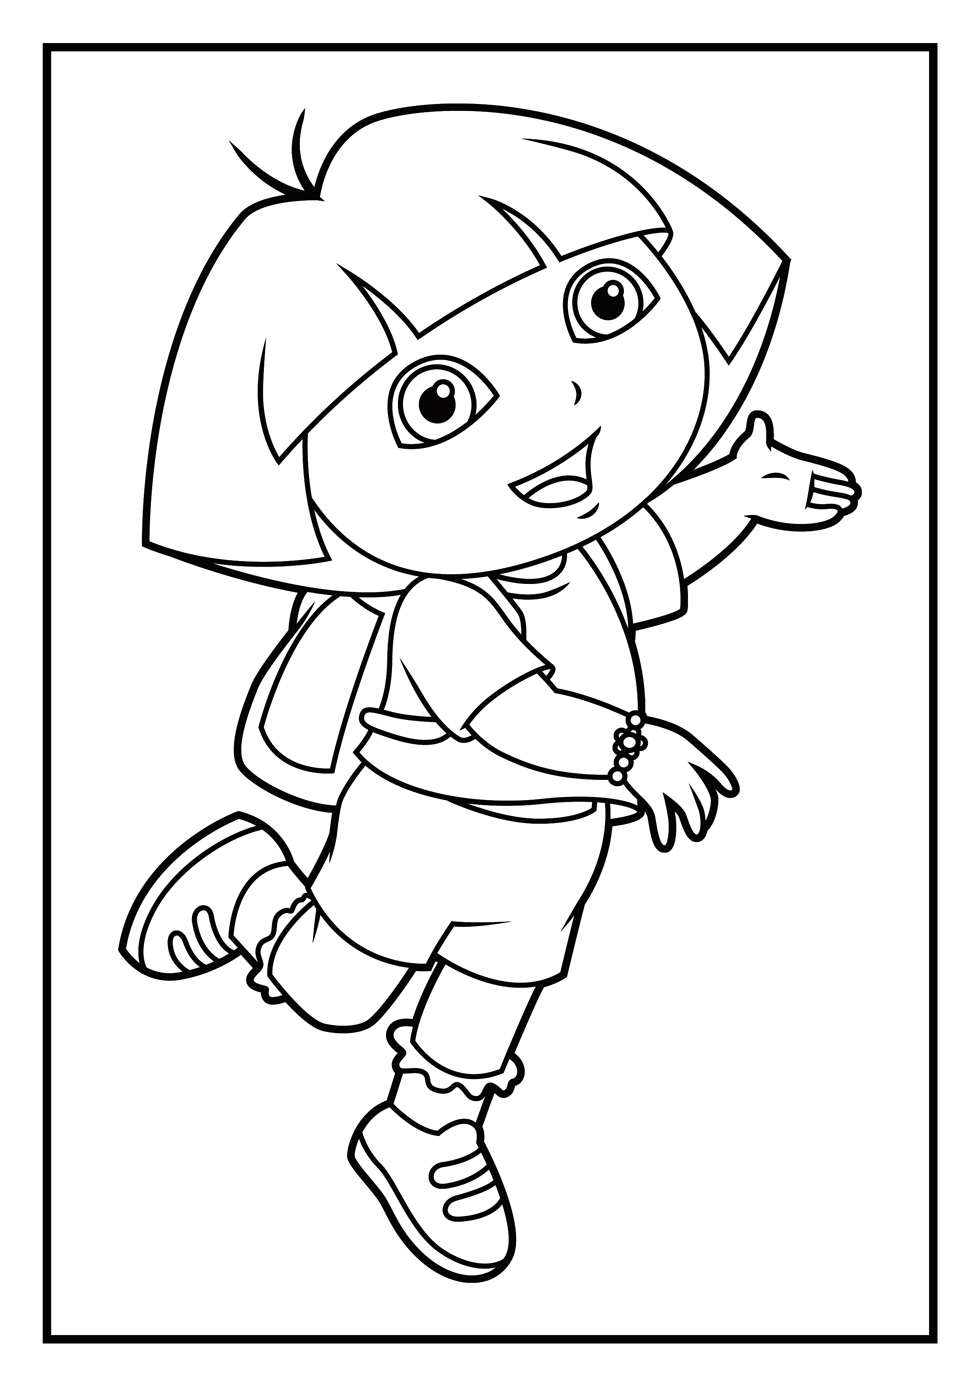 dora to color print download dora coloring pages to learn new things dora color to